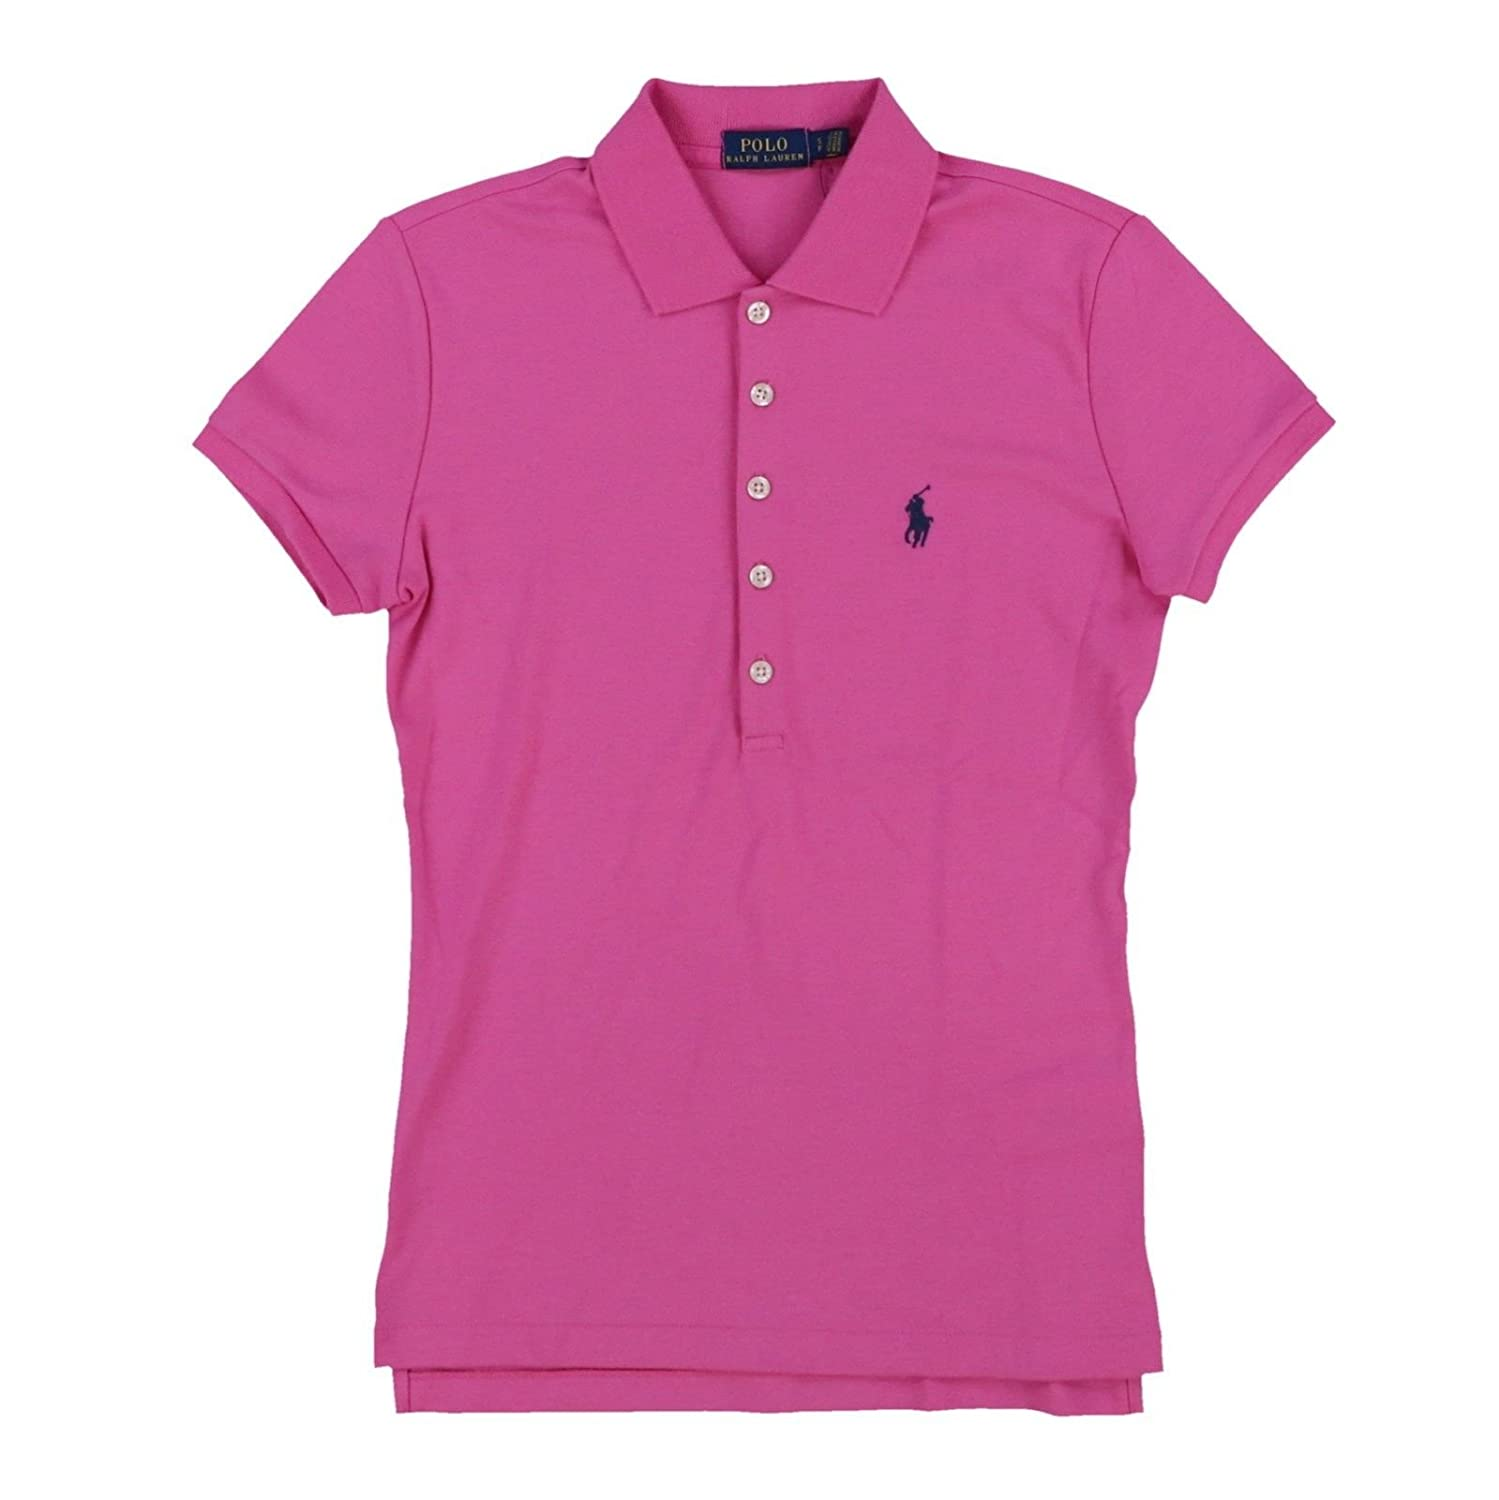 02f9561503ddc4 Womens Polo Shirts Size 22 - BCD Tofu House